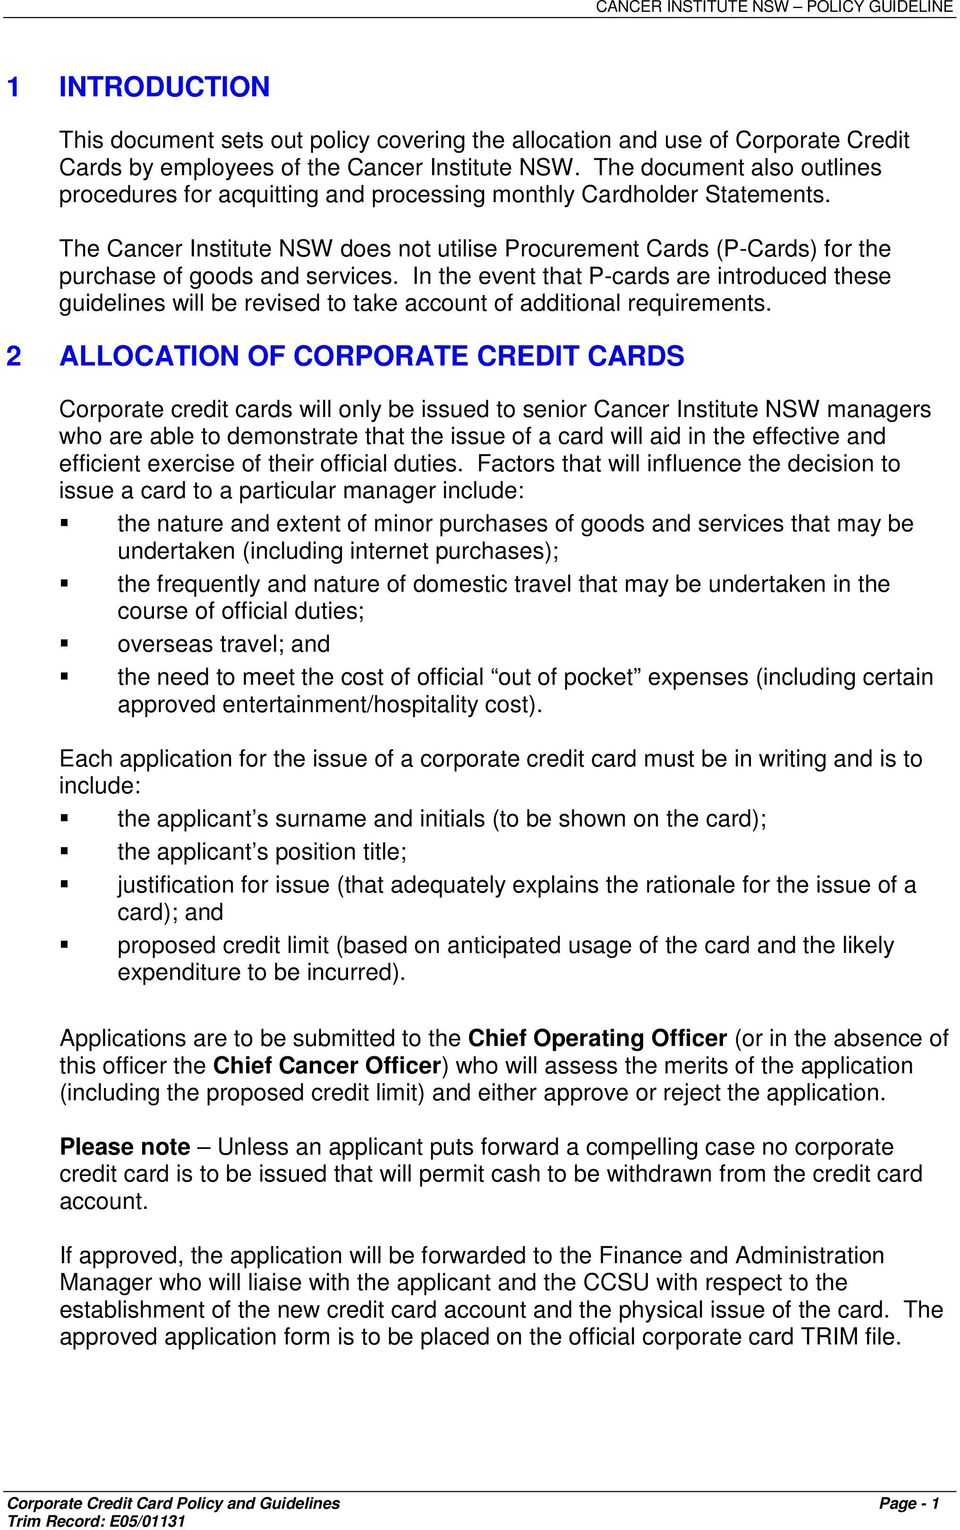 Corporate credit card policy guidelines pdf the cancer institute nsw does not utilise procurement cards p cards for the reheart Image collections